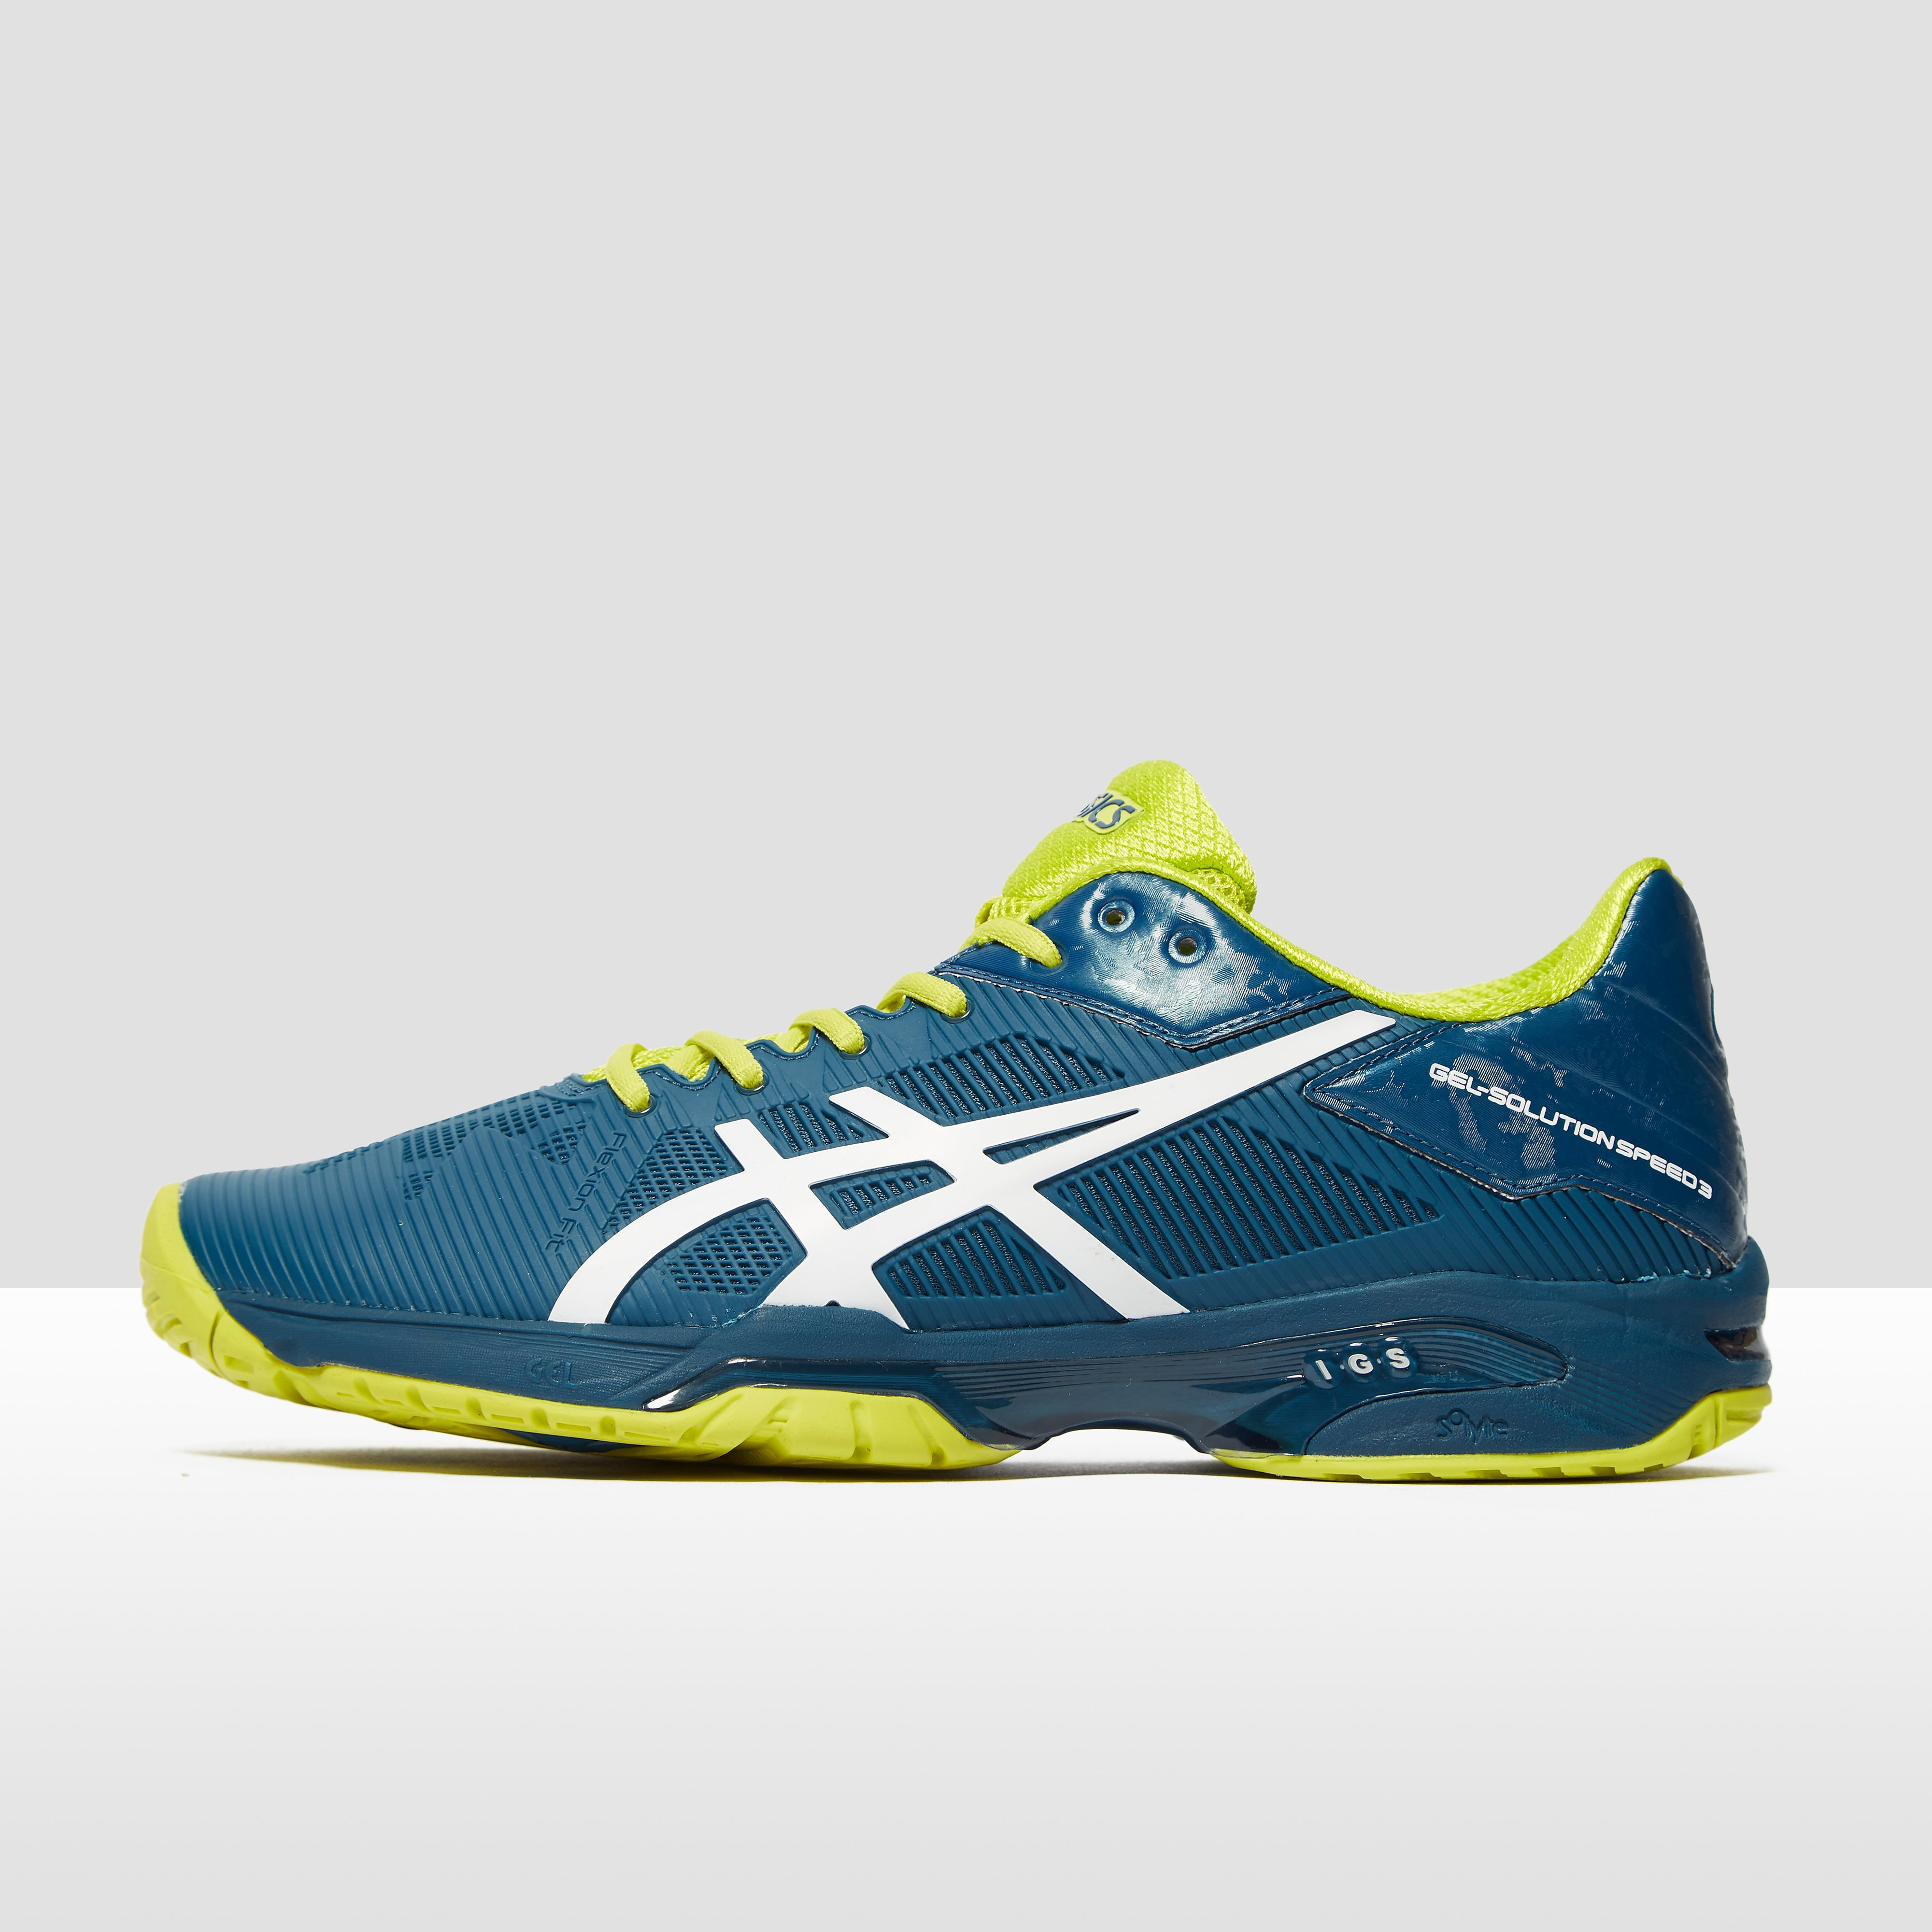 ASICS Gel-Solution Speed 3 Men's Tennis Shoe